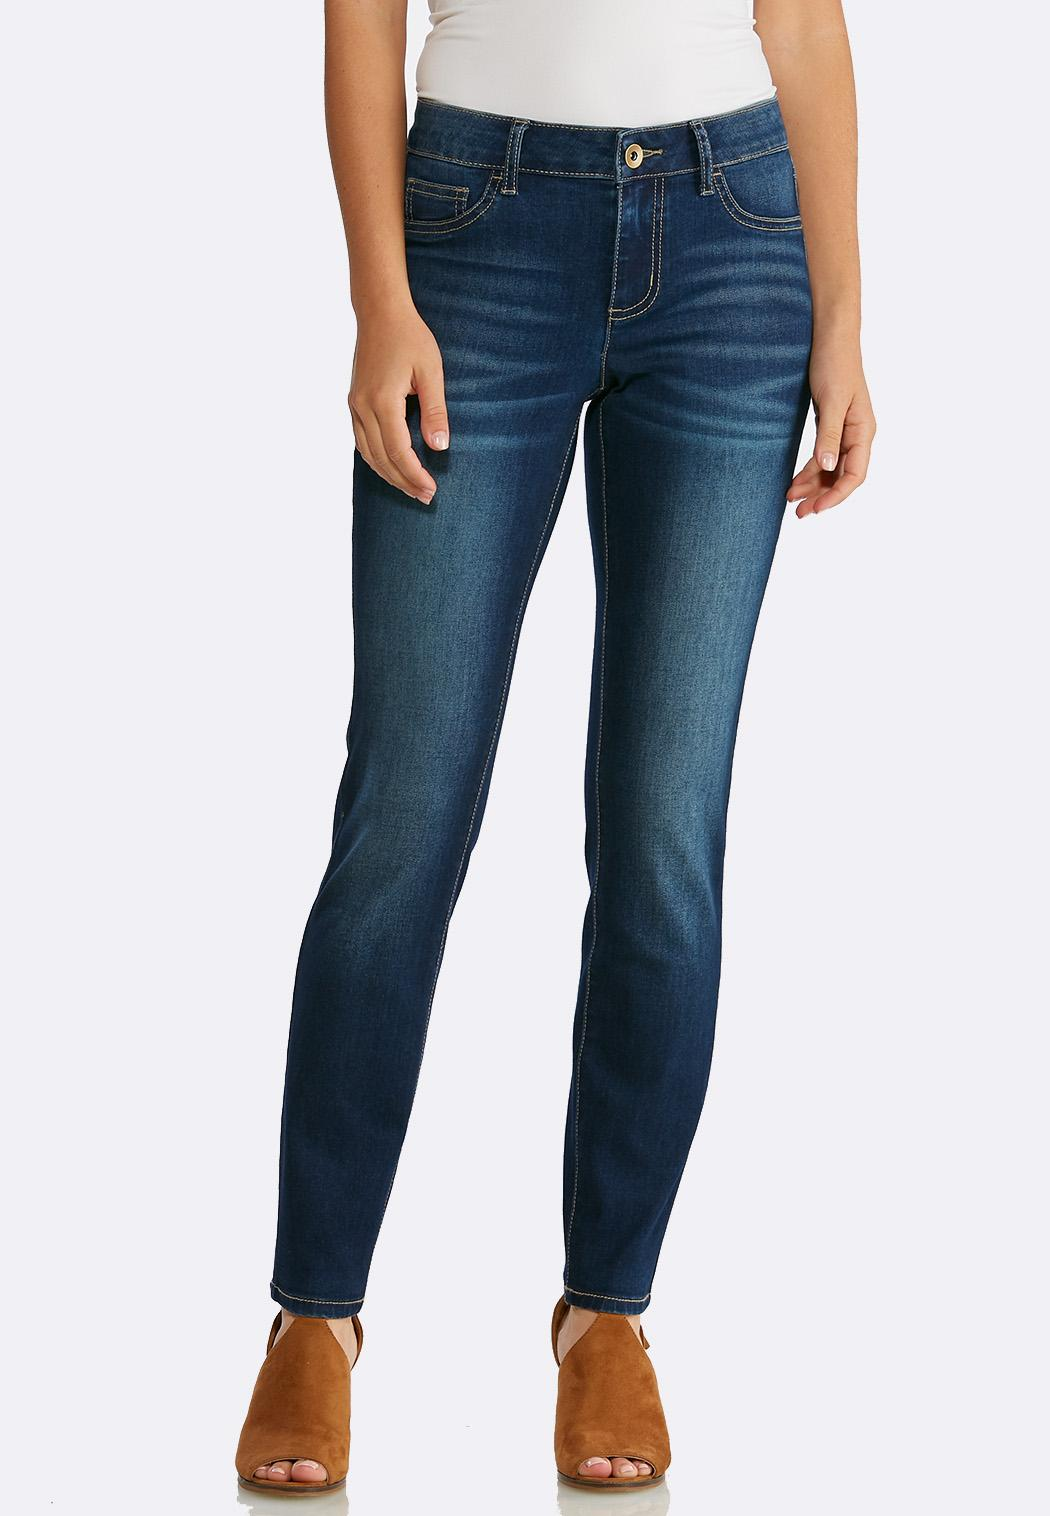 88e236a958d Dark Wash Jeggings alternate view Dark Wash Jeggings